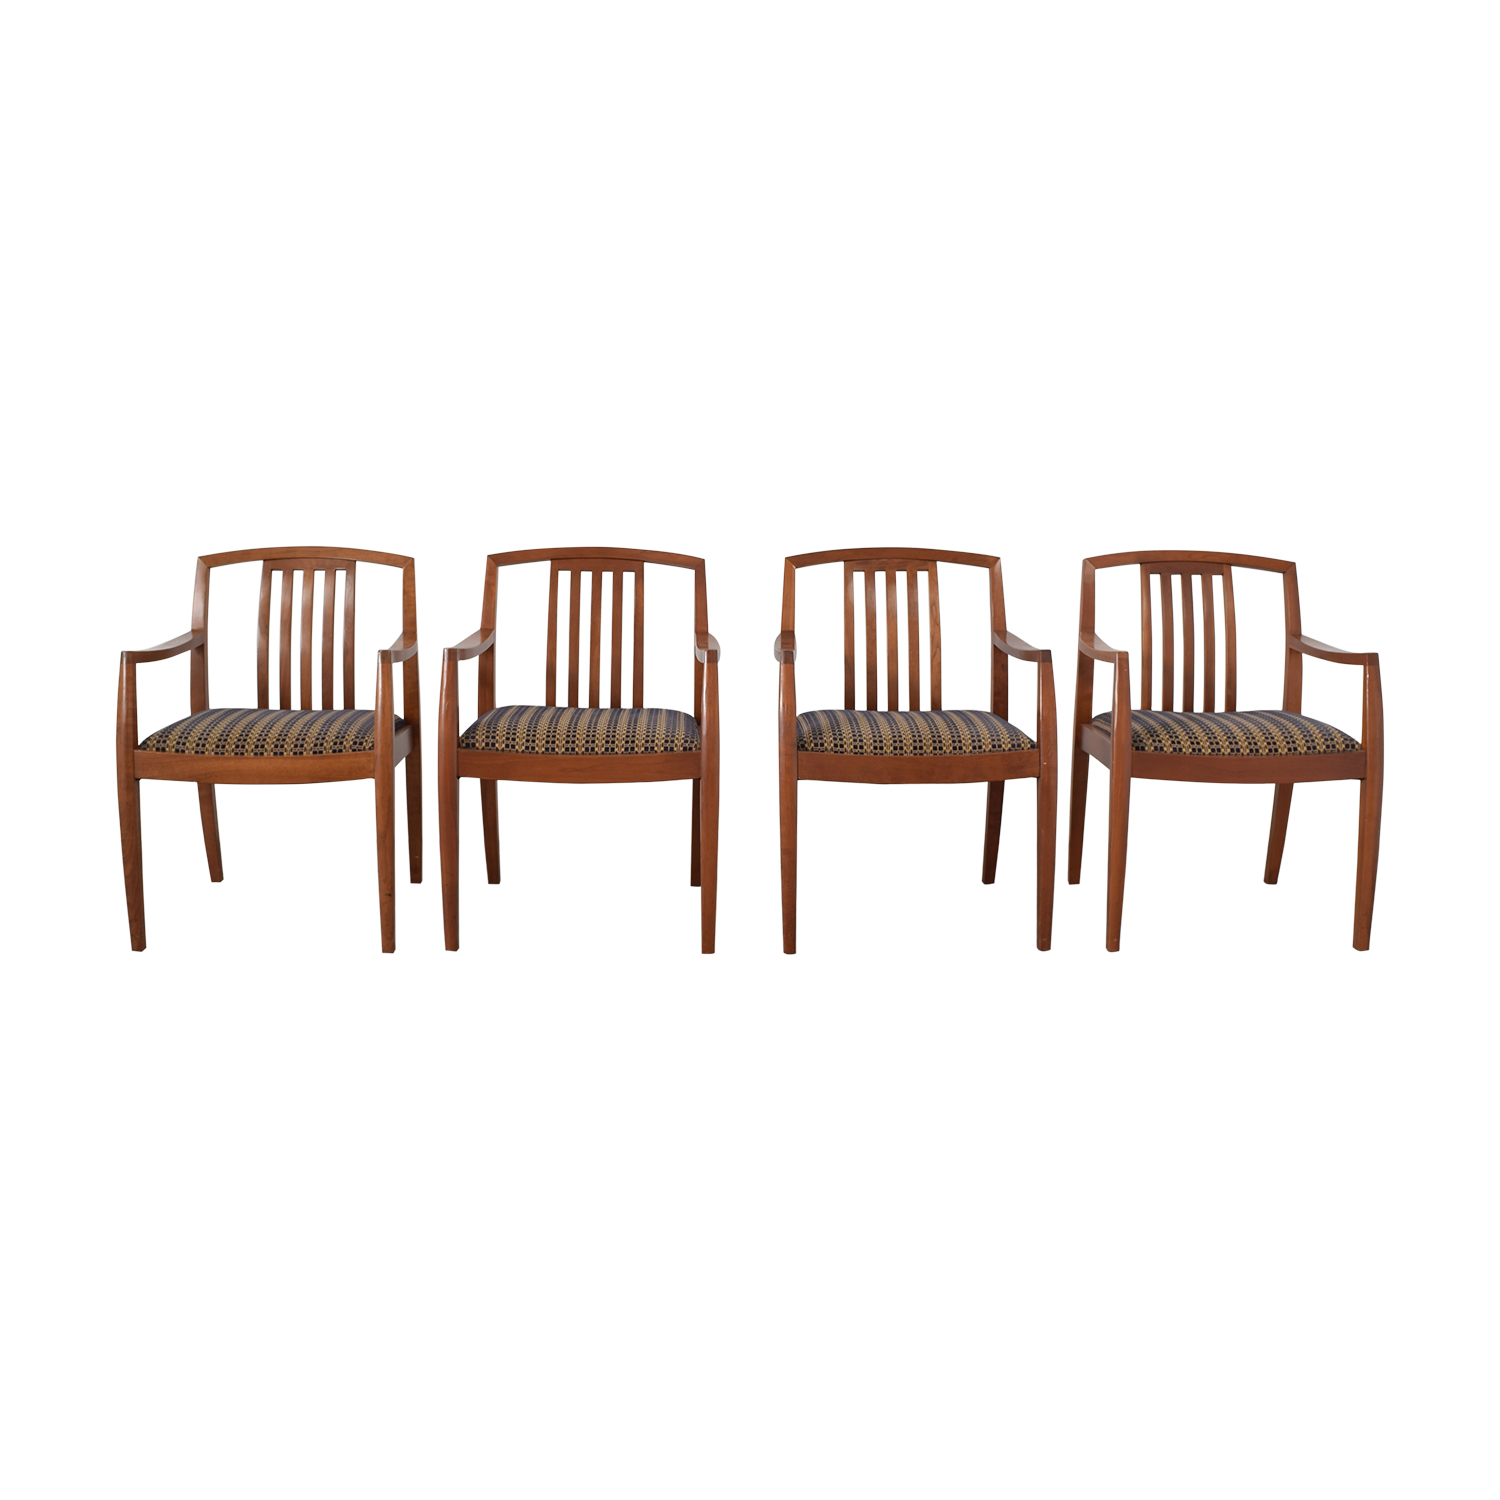 Gunlocke Company Gunlocke Company Upholstered Dining Chairs on sale